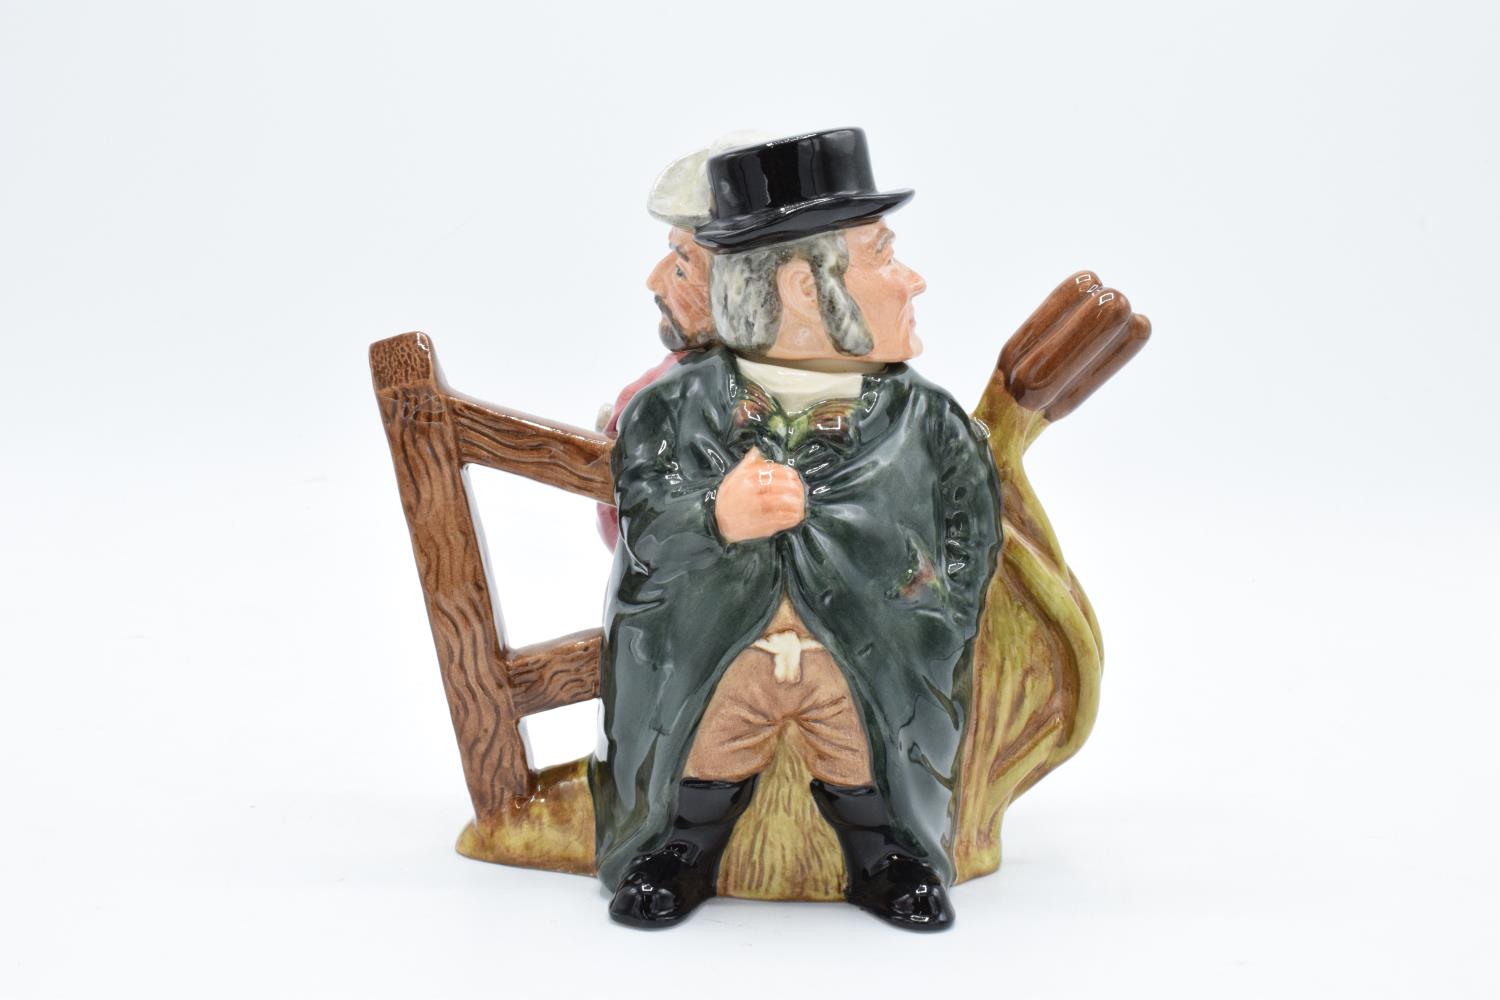 Royal Doulton Double sided character jug tea pot Gamekeeper and Poacher D7175, number 467 of 1500. - Image 2 of 3